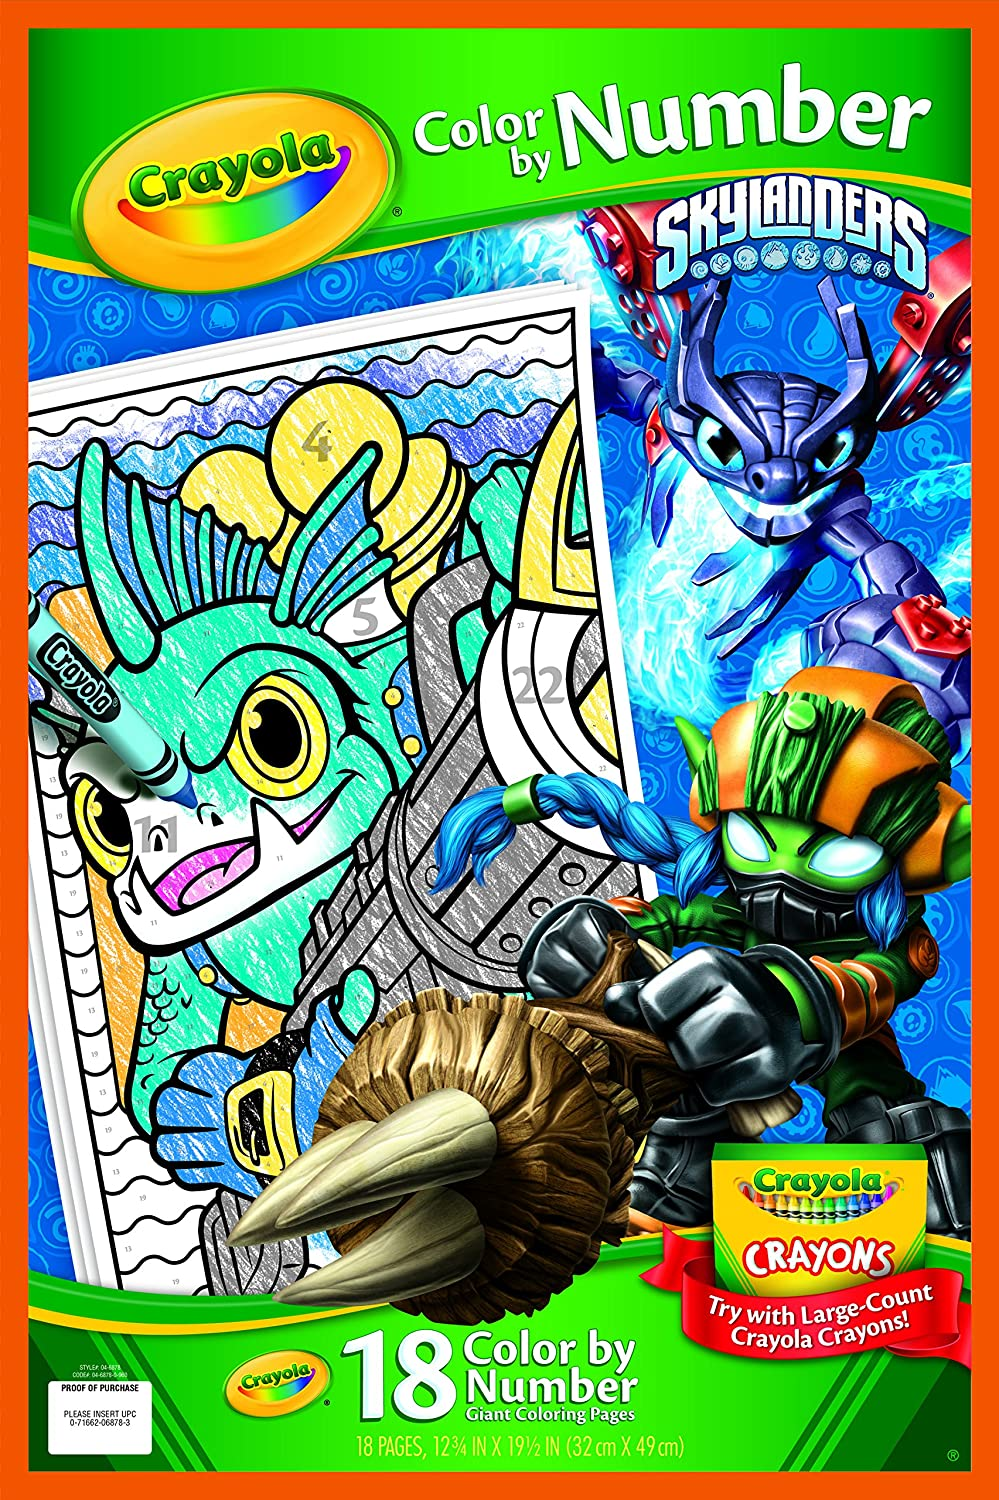 Crayola Skylanders Giant Coloring Pages Binney /& Smith 04-6878